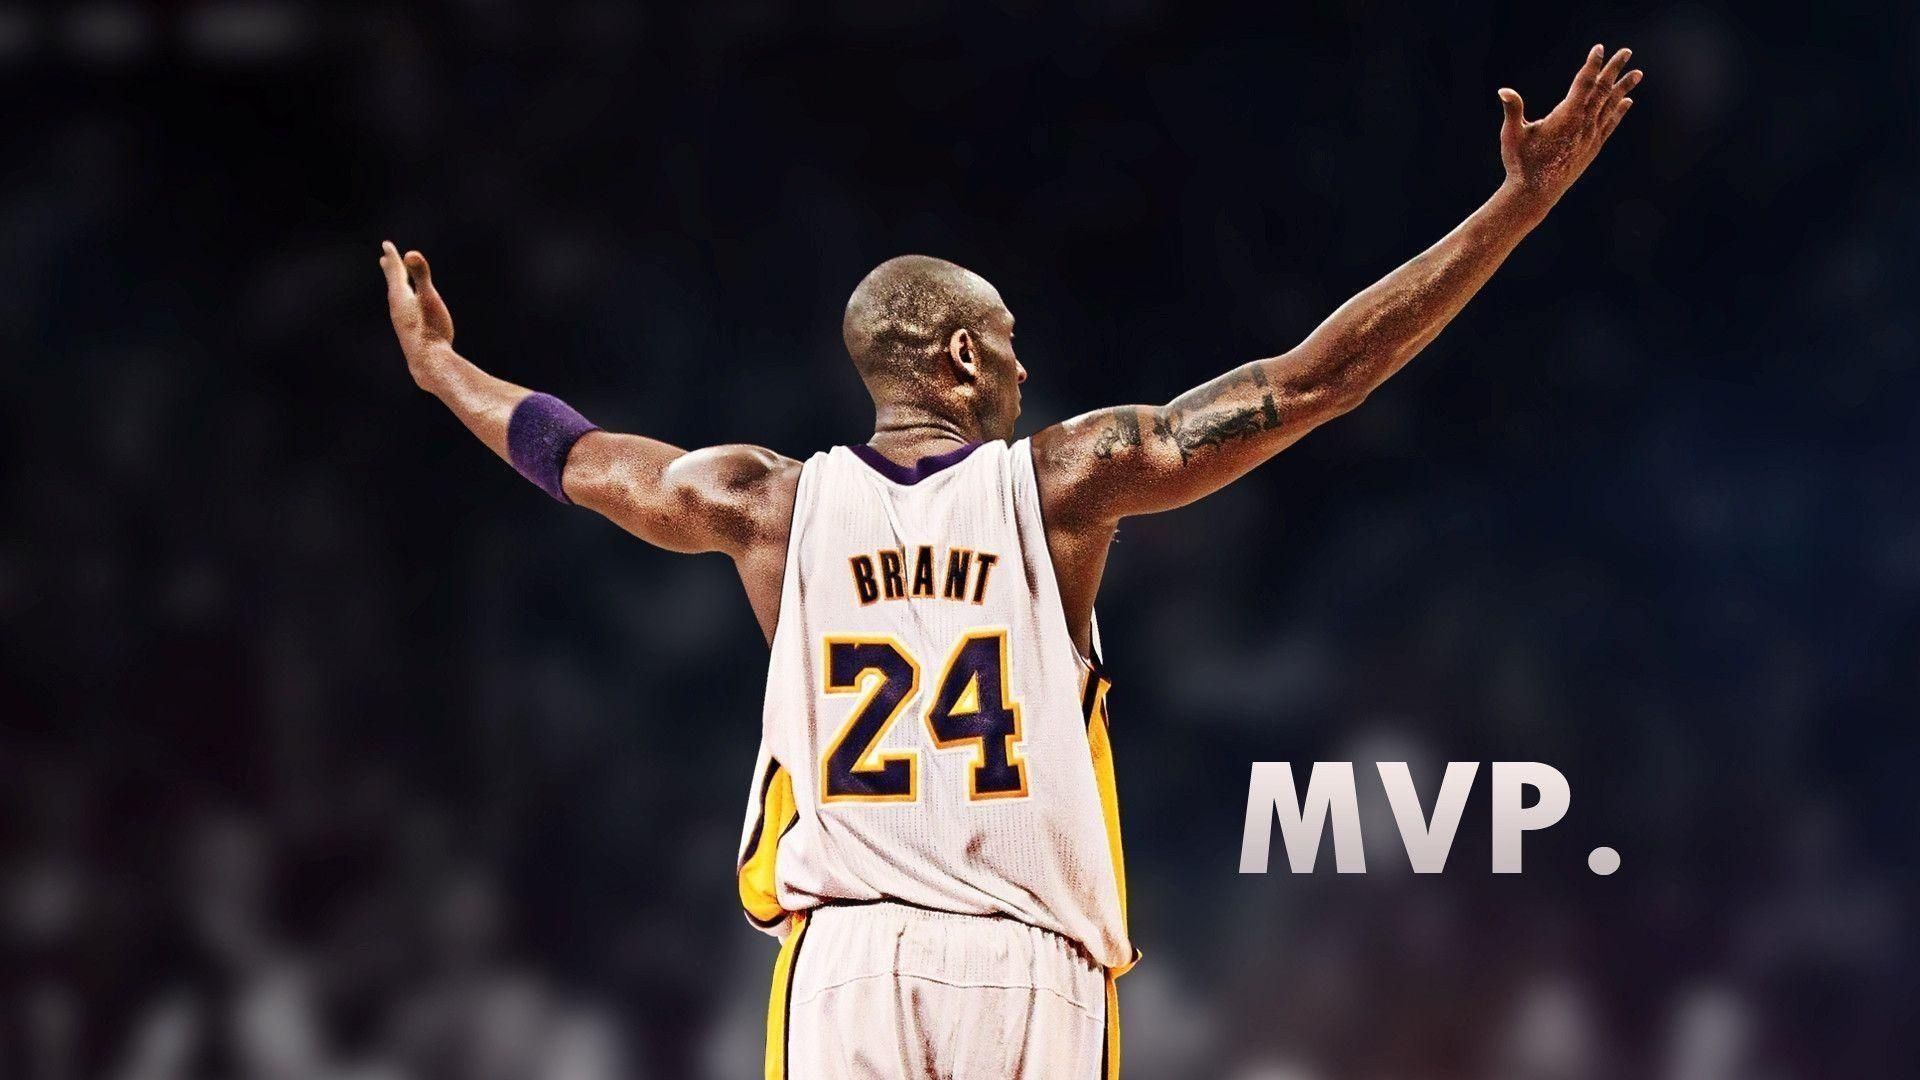 kobe bryant mvp wallpaper 70105